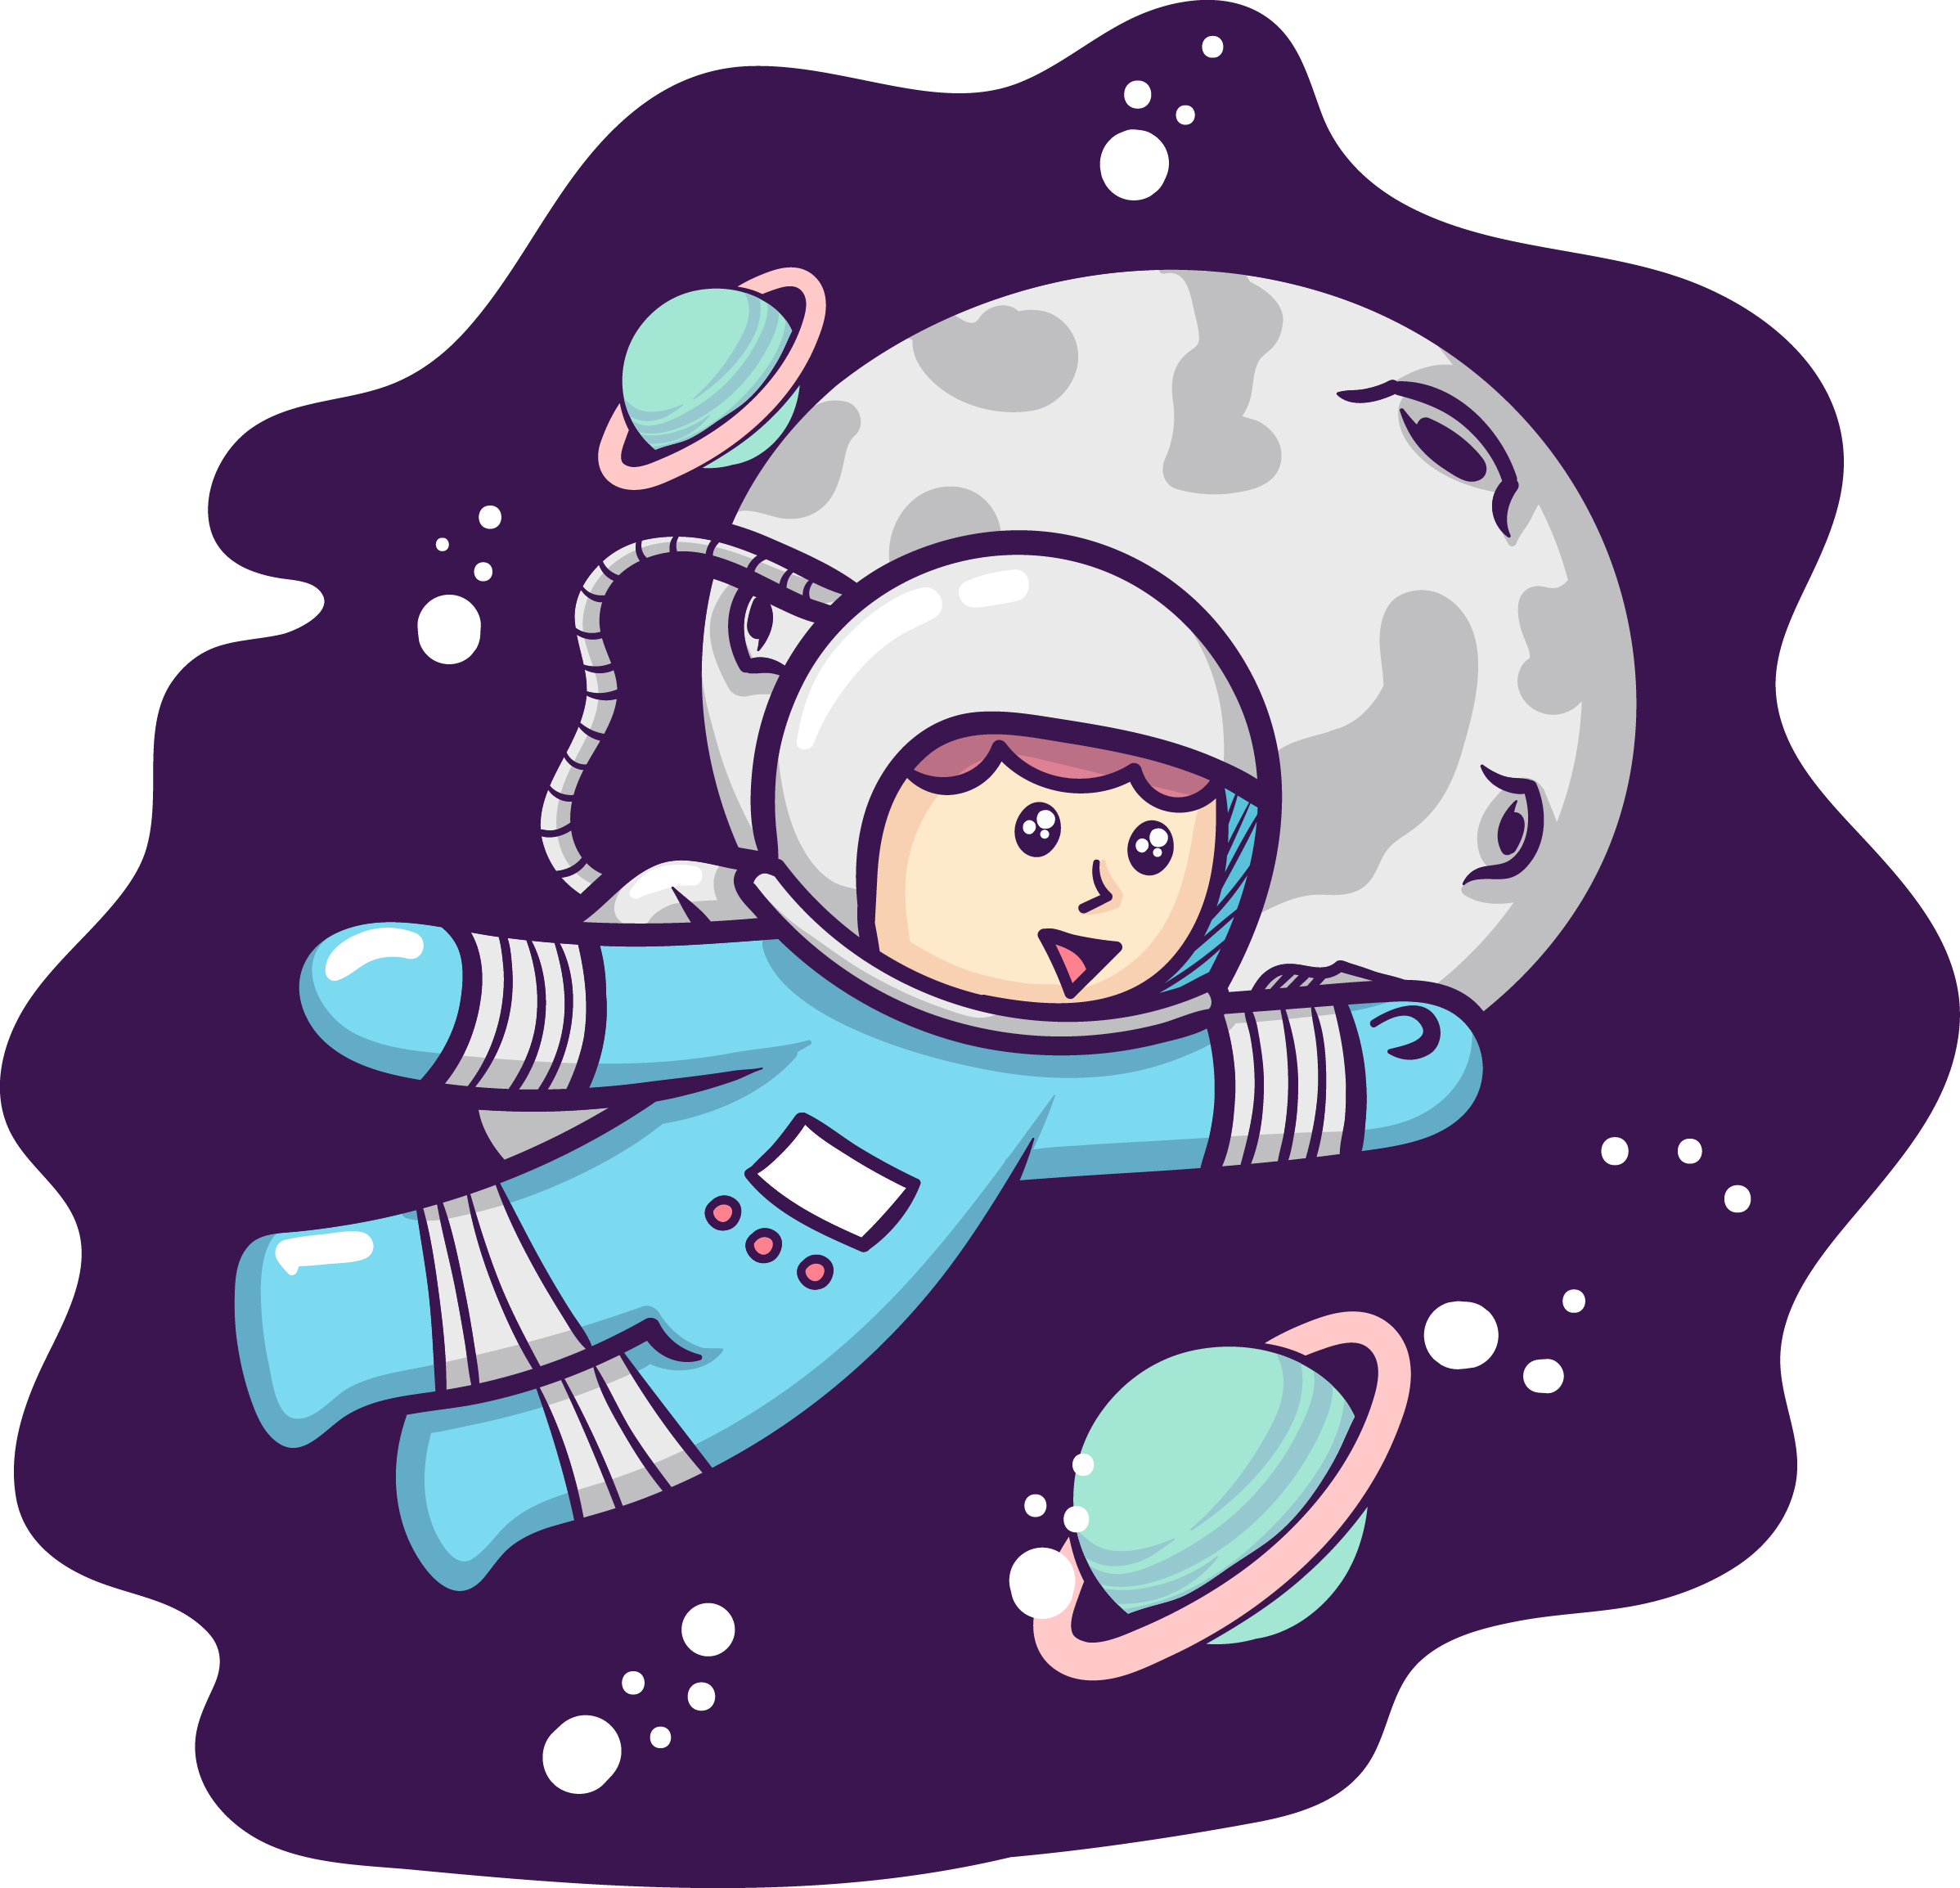 Moon - Astronauta Cute Clipart - Large Size Png Image - PikPng